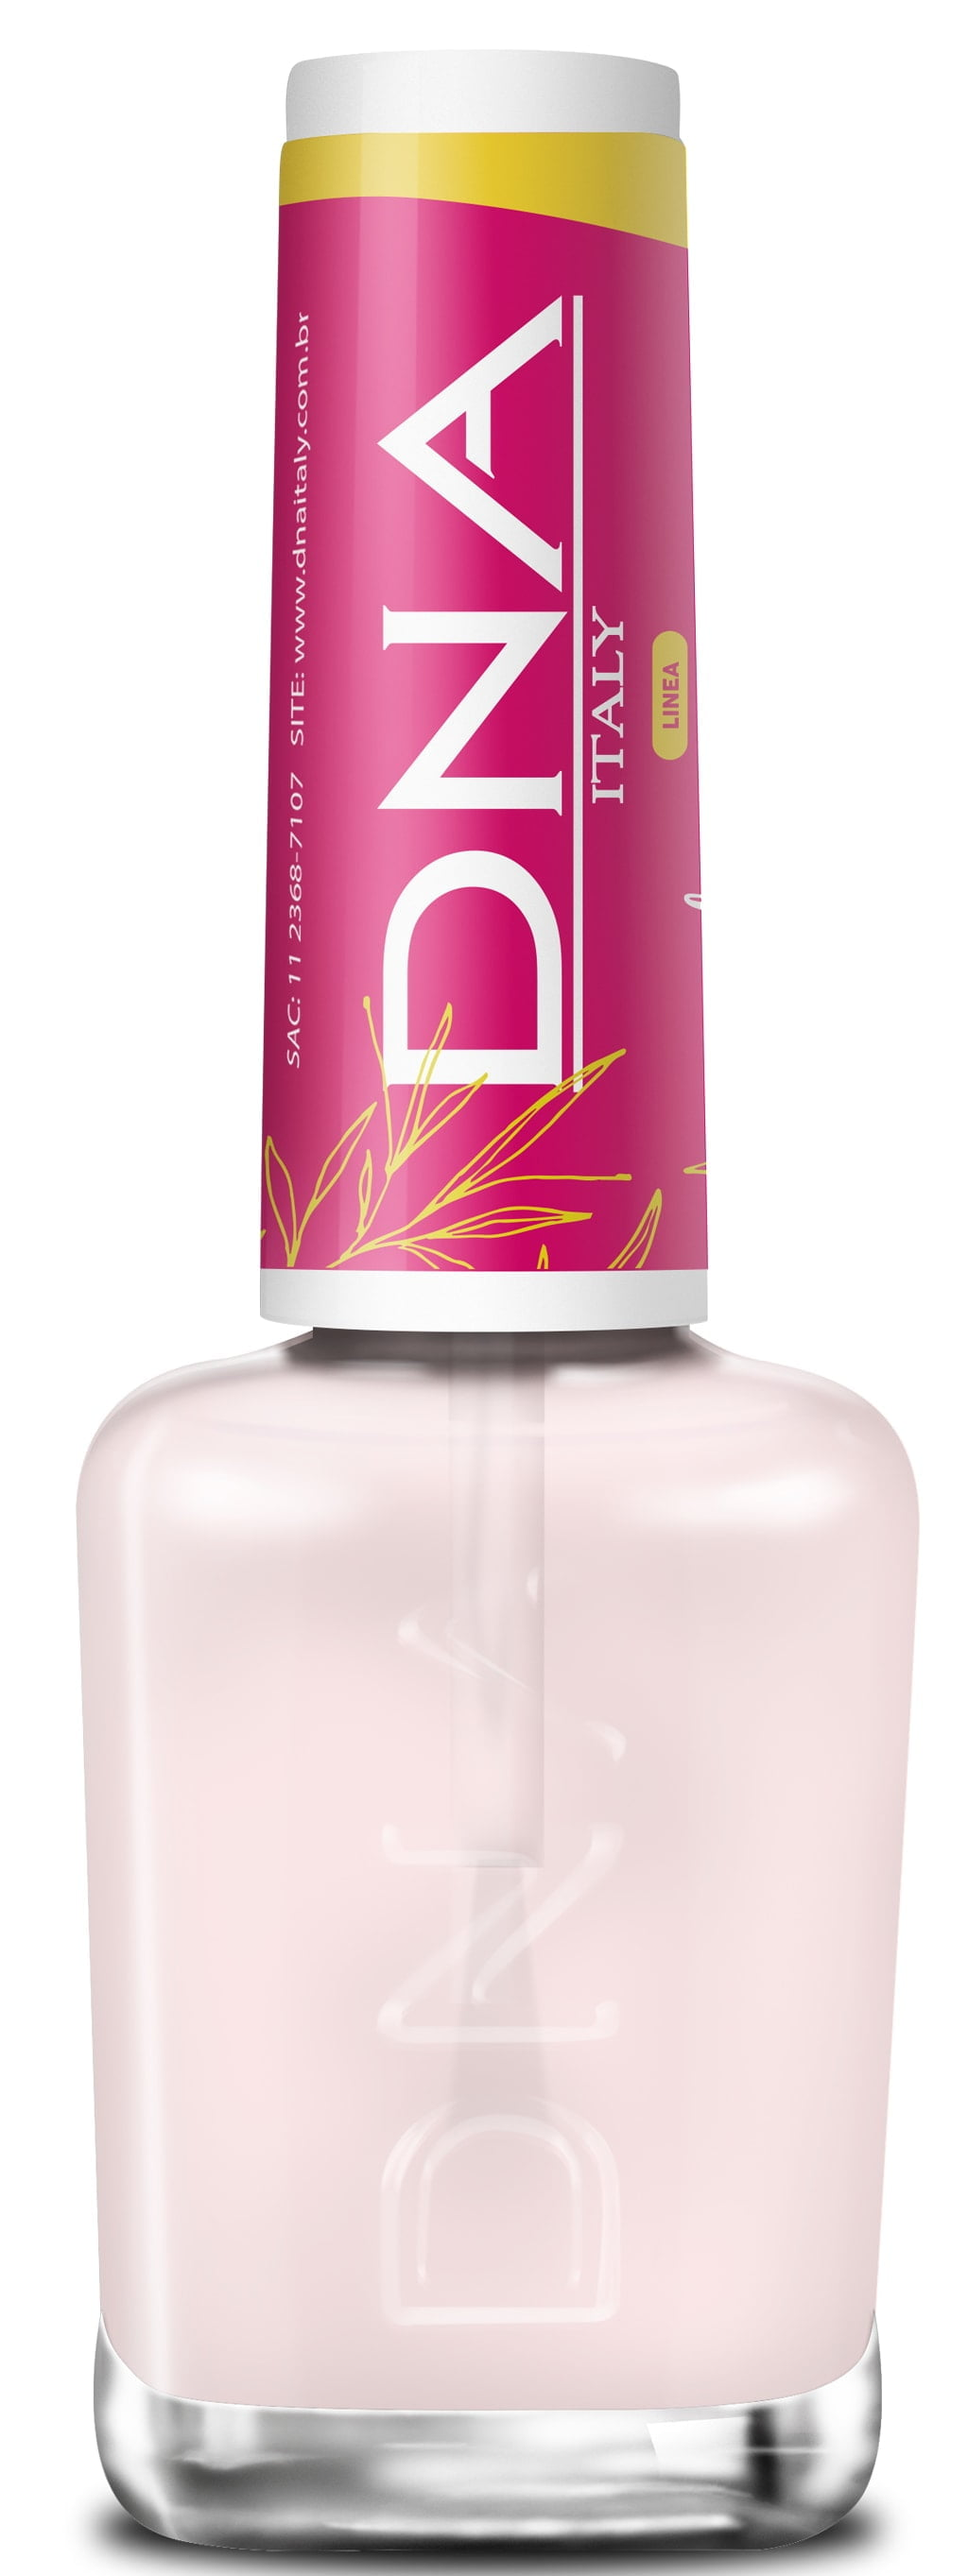 Base para unhas DNA Italy Beauty Nail Fuido Endurecedor